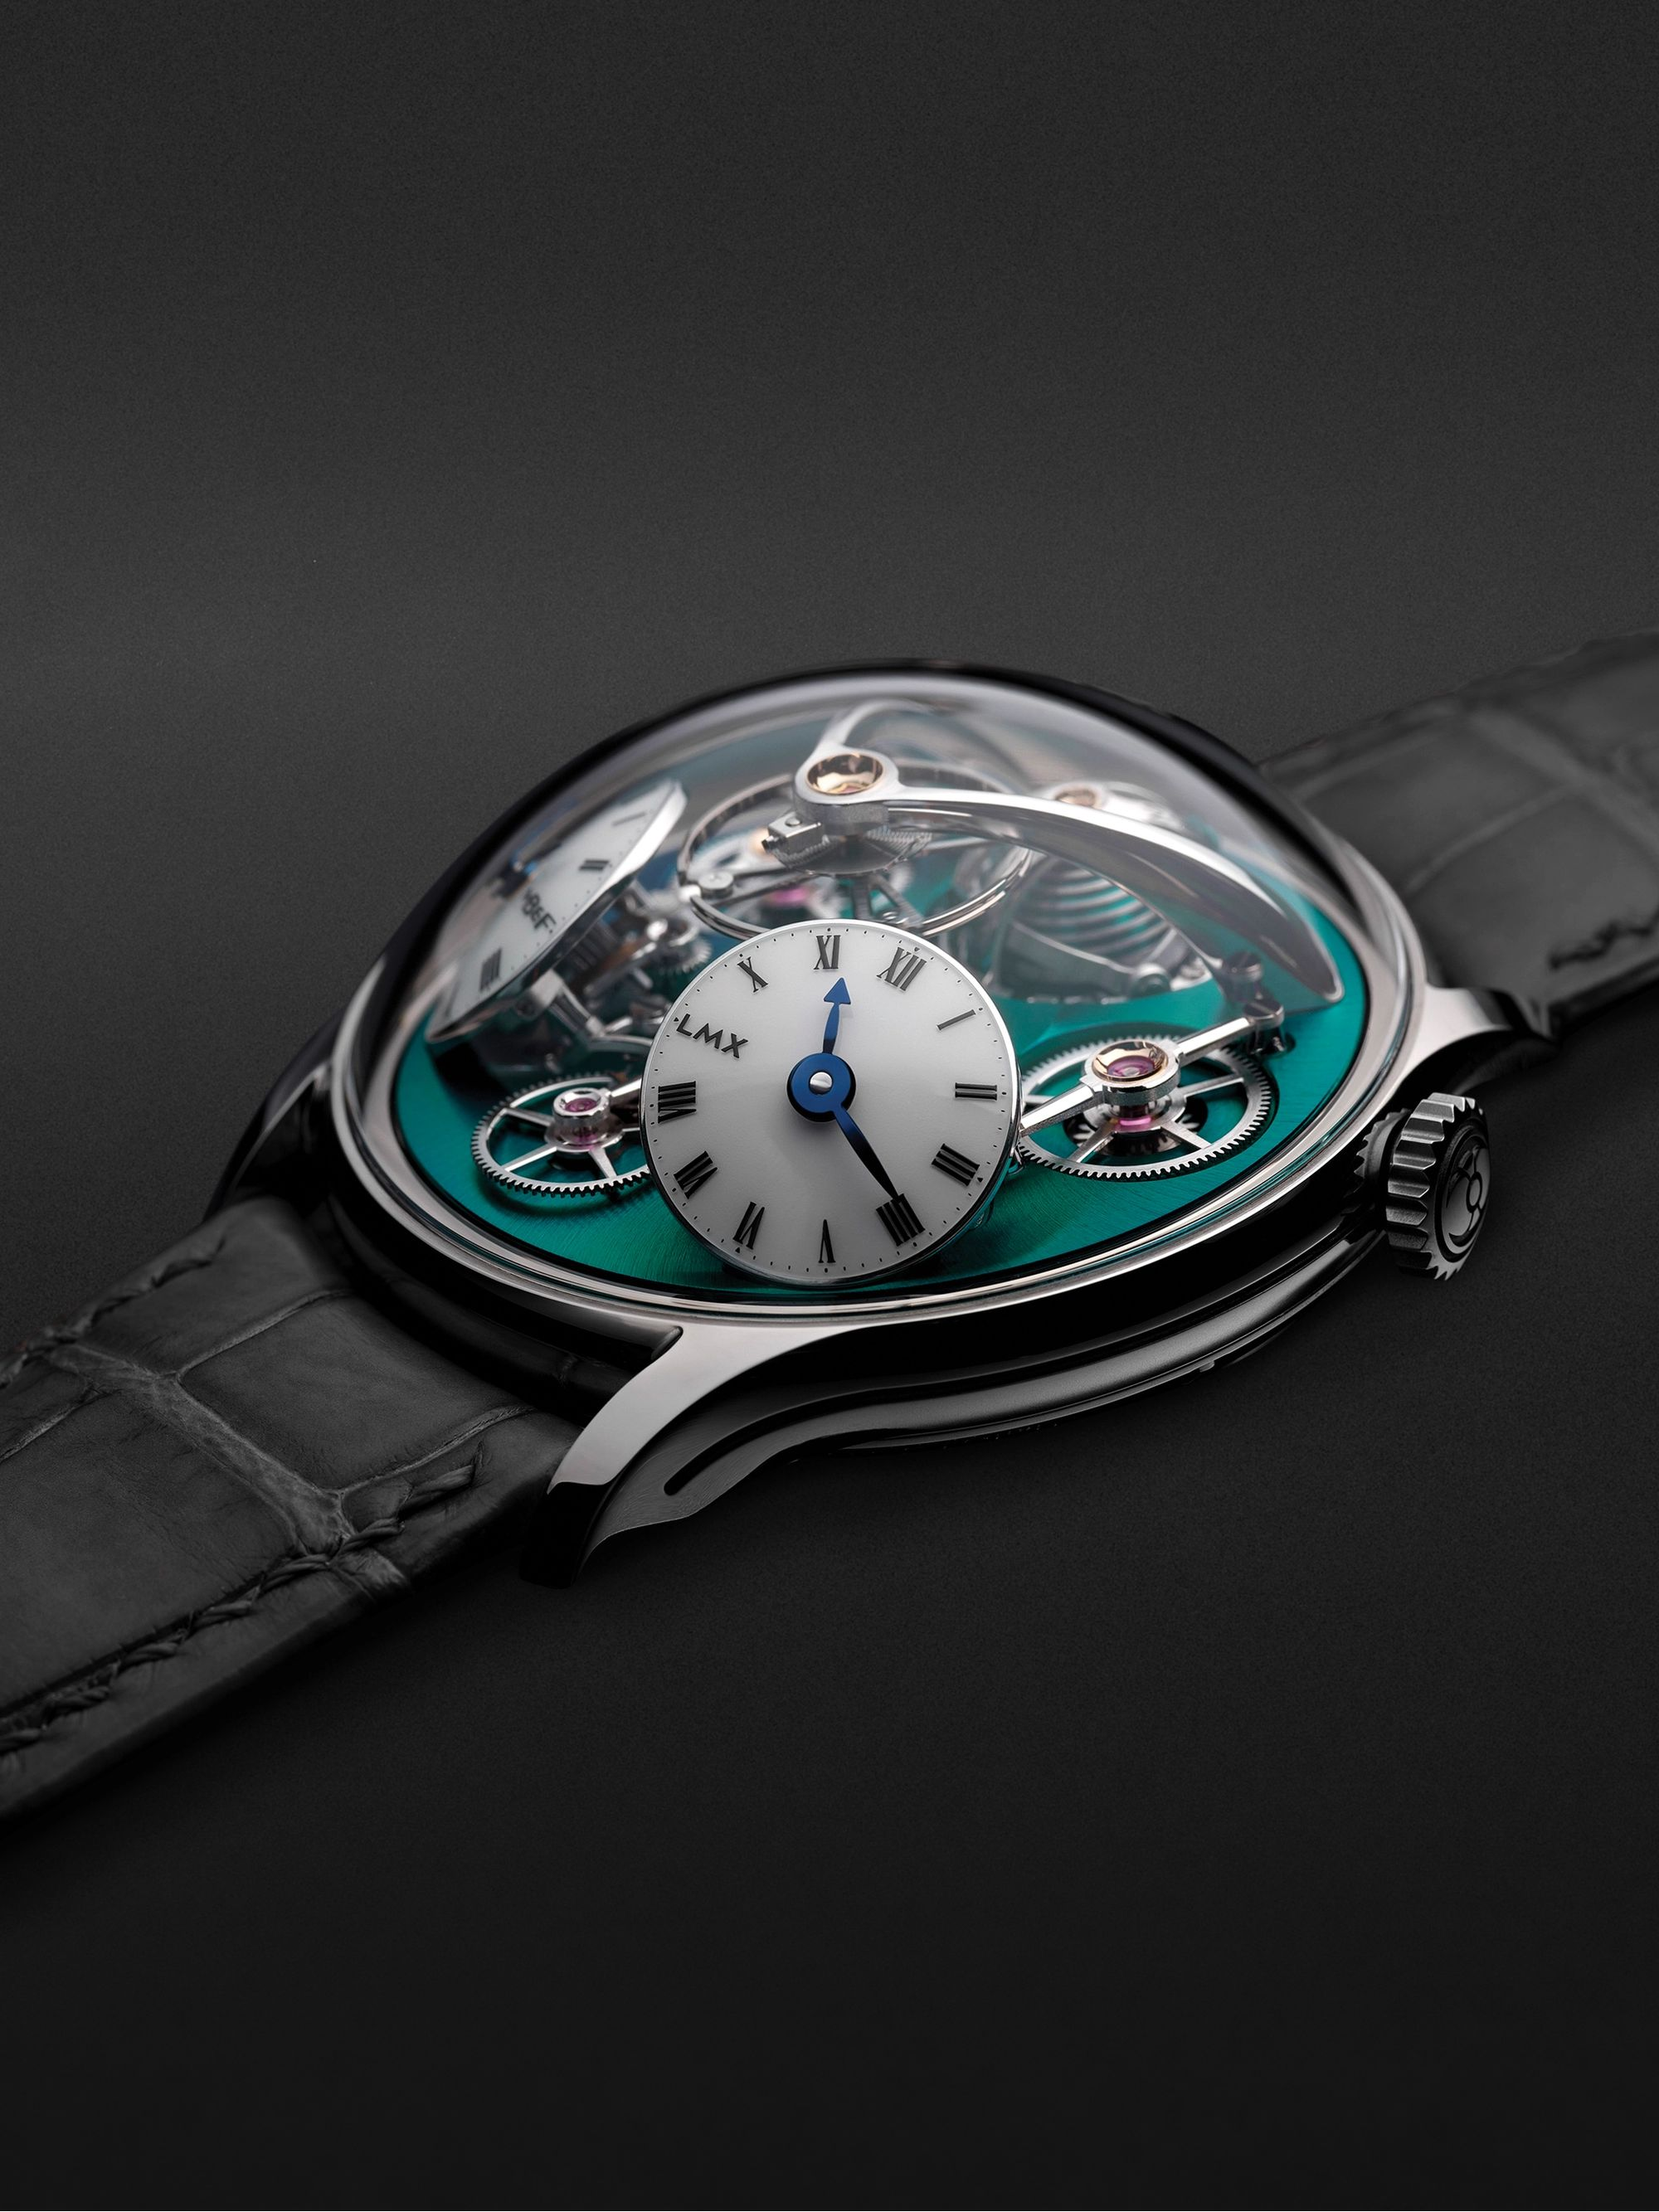 MB&F LMX Limited Edition Hand-Wound 44mm Titanium and Alligator Watch